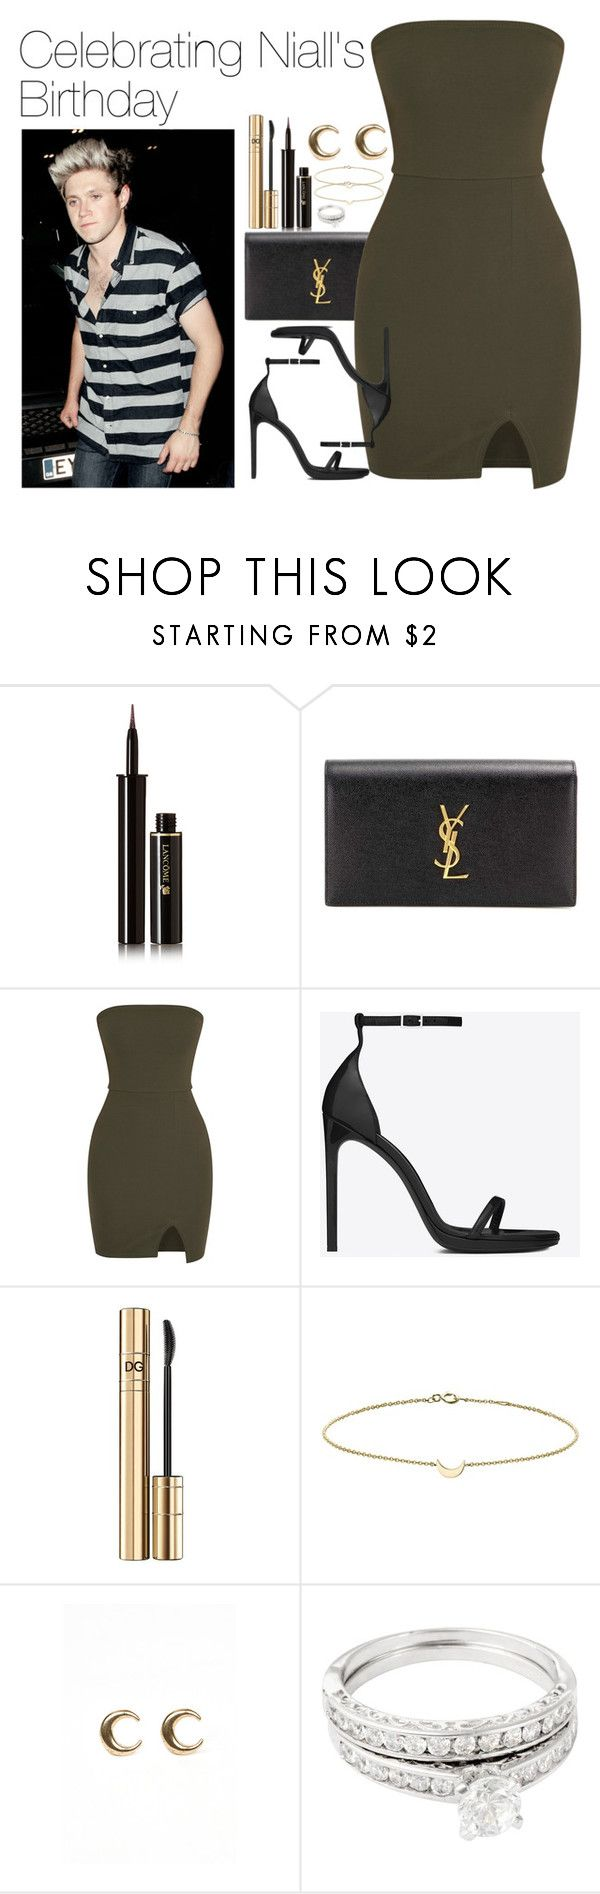 """""""Celebrating Niall's Birthday"""" by onedirectionimagineoutfits99 ❤ liked on Polyvore featuring Lancôme, Yves Saint Laurent, D&G, Minor Obsessions, LowLuv and Simply Silver"""